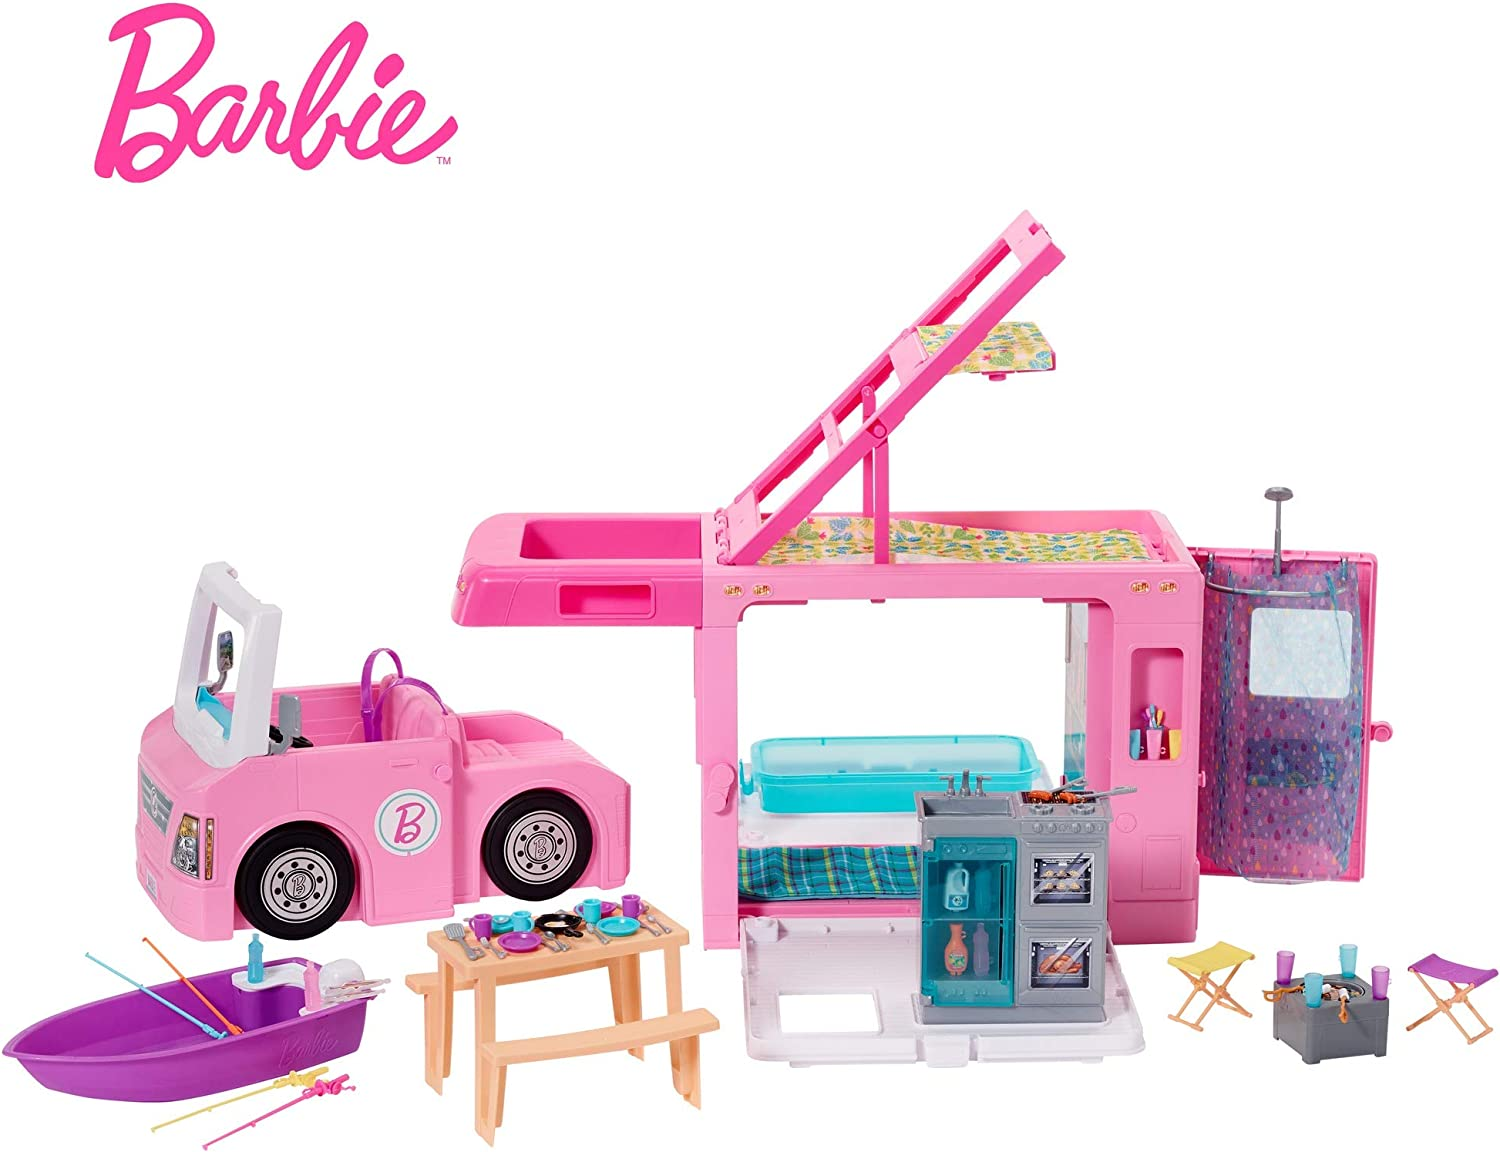 ​Barbie 3-in-1 DreamCamper Vehicle, approx. 3-ft, Transforming Camper with Pool, Truck, Boat and 50 Accessories, Makes a Great Gift for 3 to 7 Year Olds